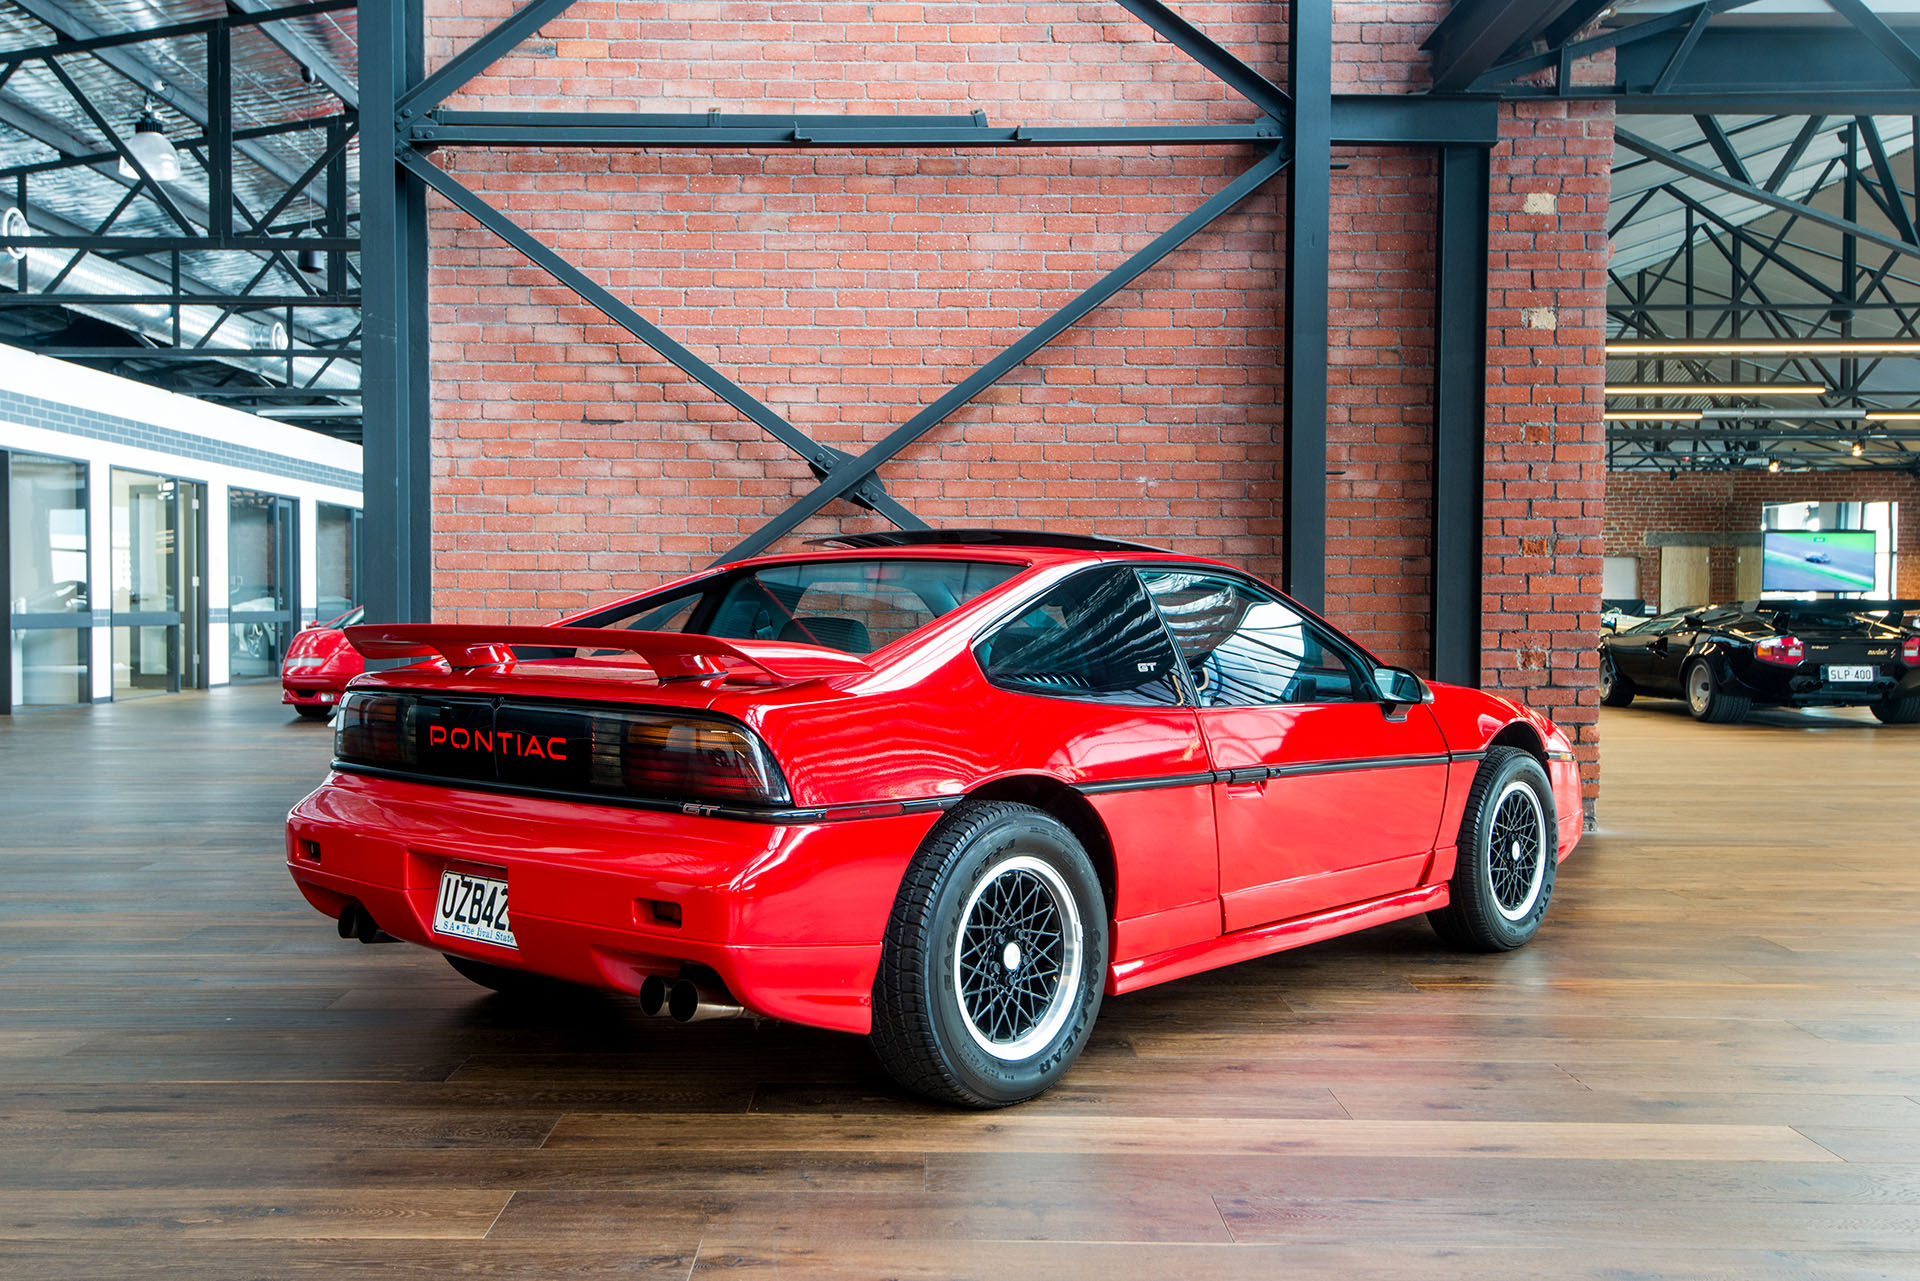 What Transmission Is In My Car >> 1988 Pontiac Fiero GT - Richmonds - Classic and Prestige Cars - Storage and Sales - Adelaide ...